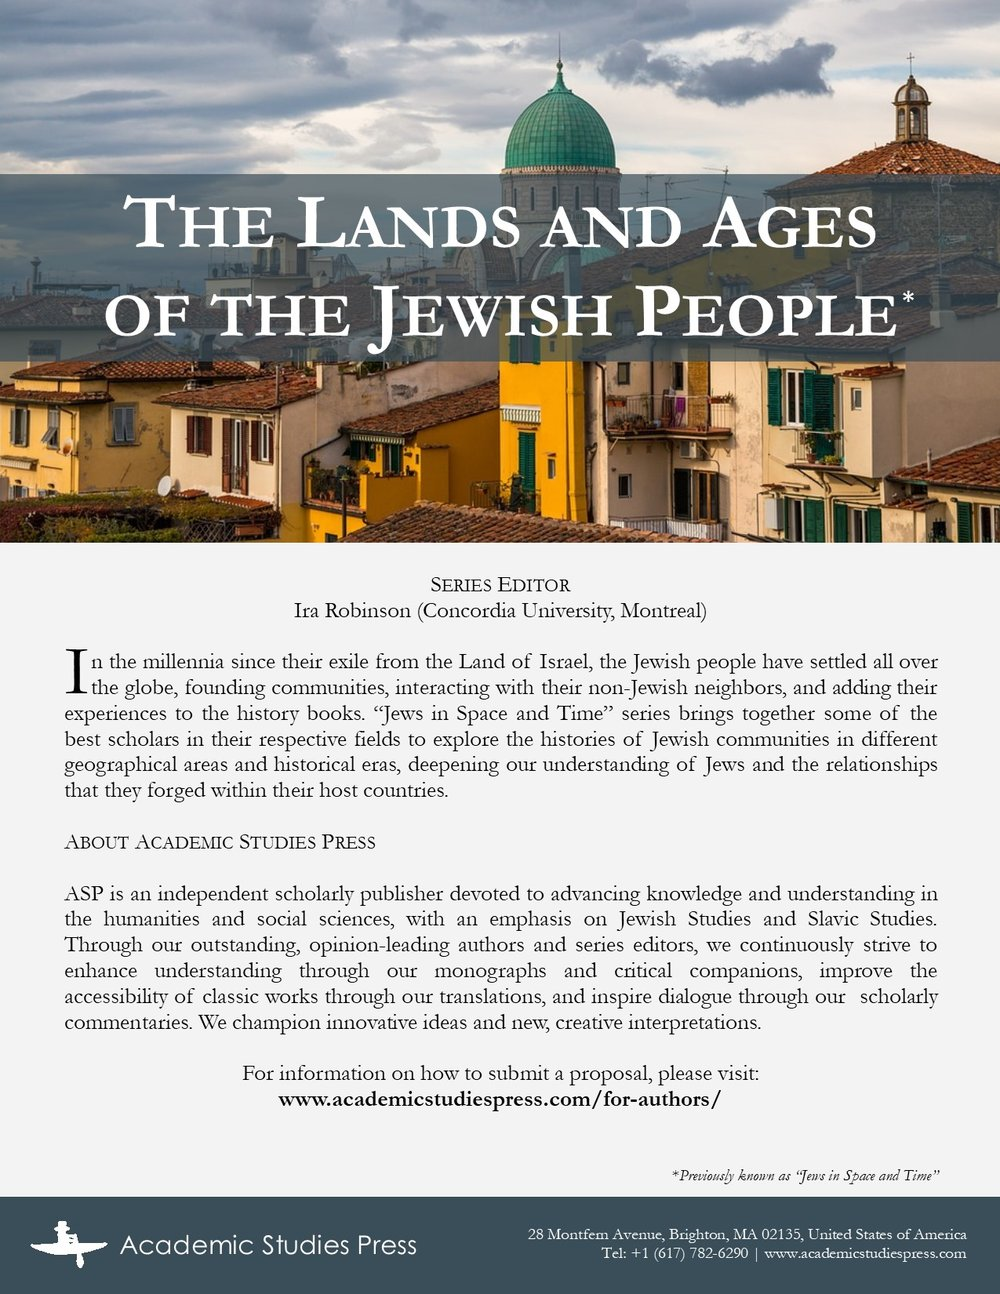 The Lands and Ages of the Jewish People Flyer.jpg